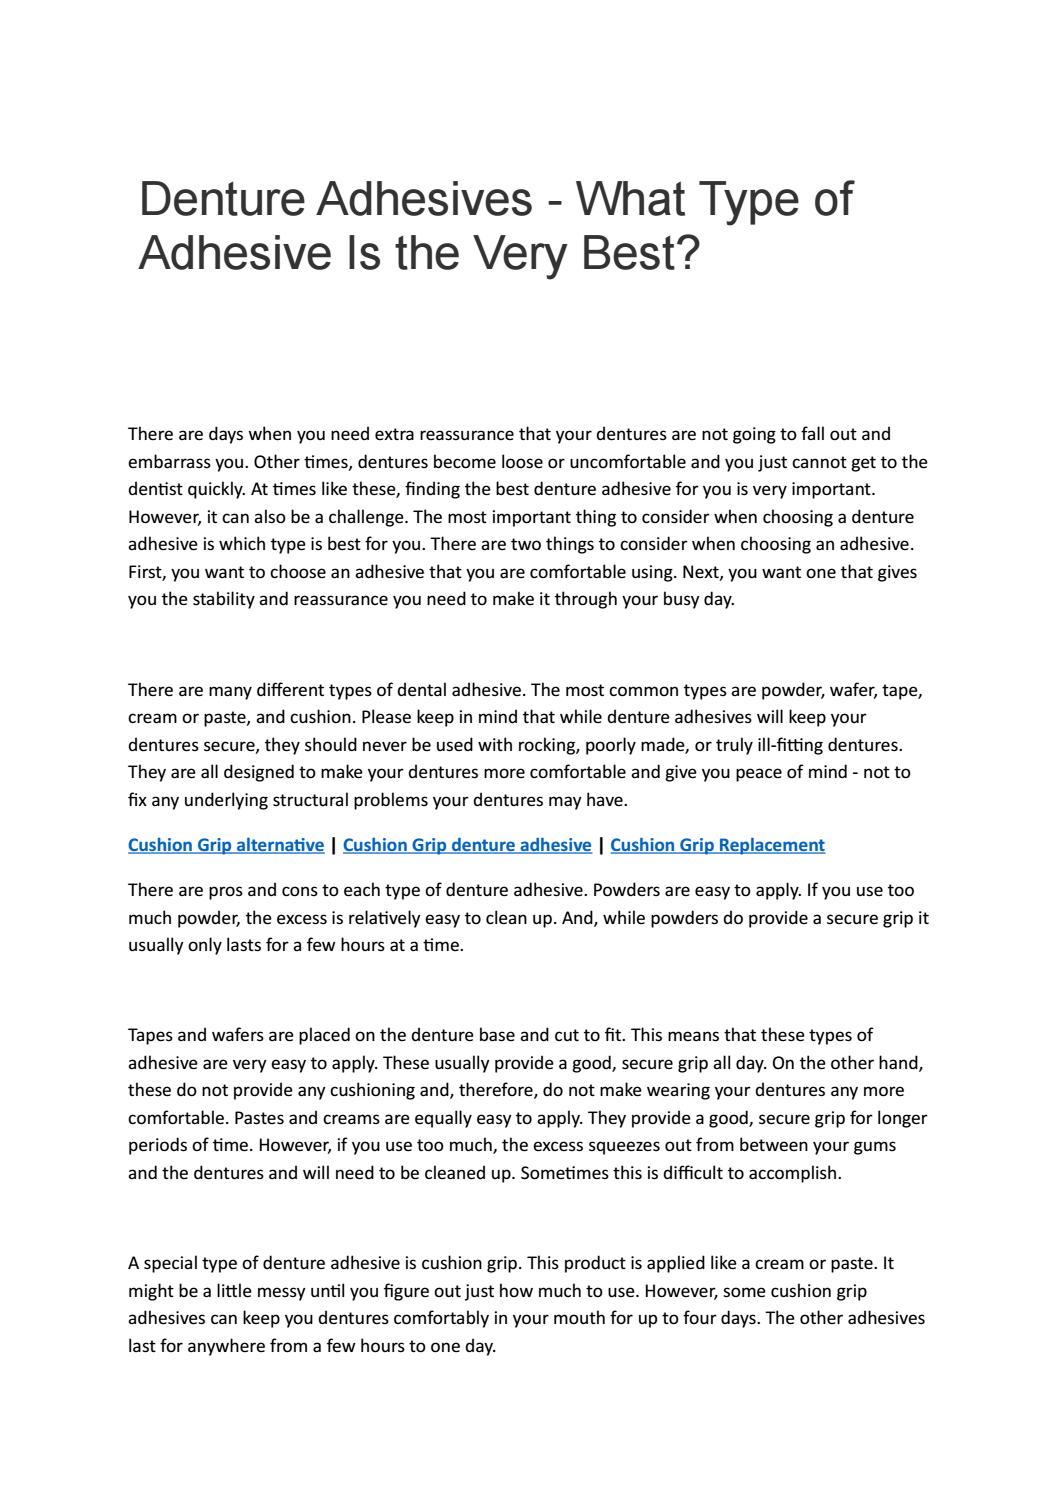 Denture Adhesives What Type Of Adhesive Is The Very Best By Ricky